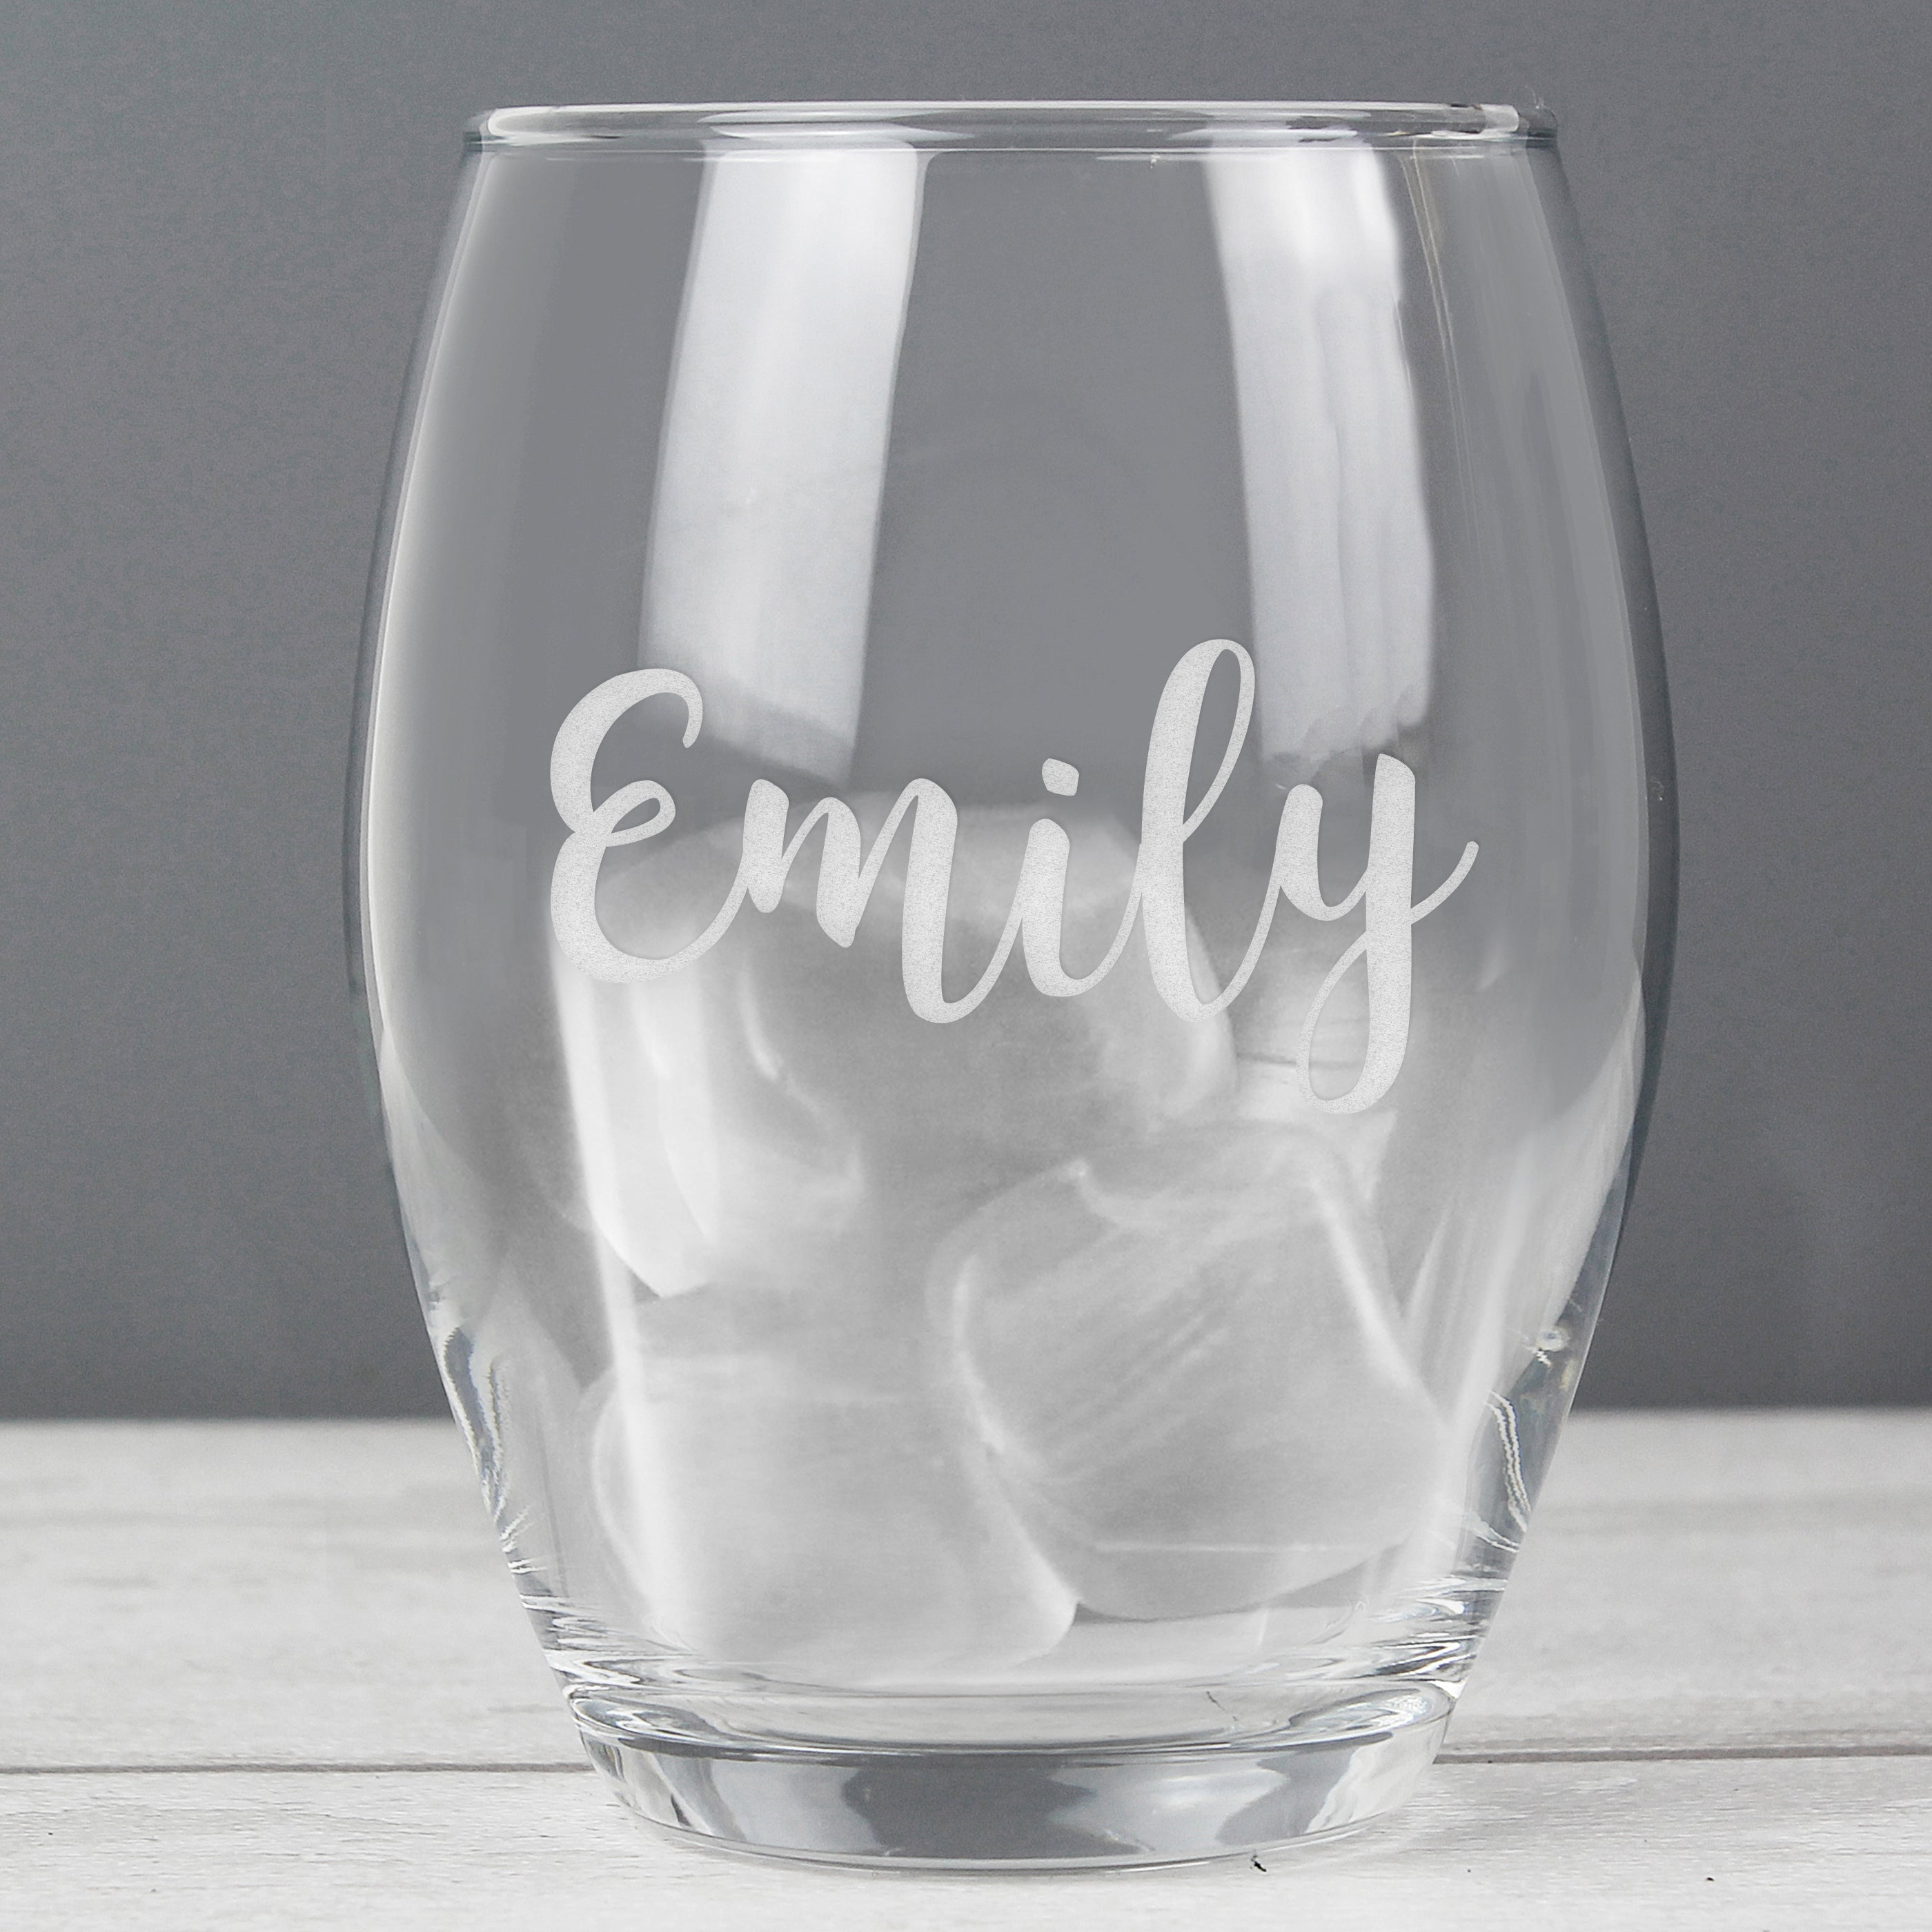 Personalised Name Only Stemless Wine Glass, Home & Garden by Low Cost Gifts